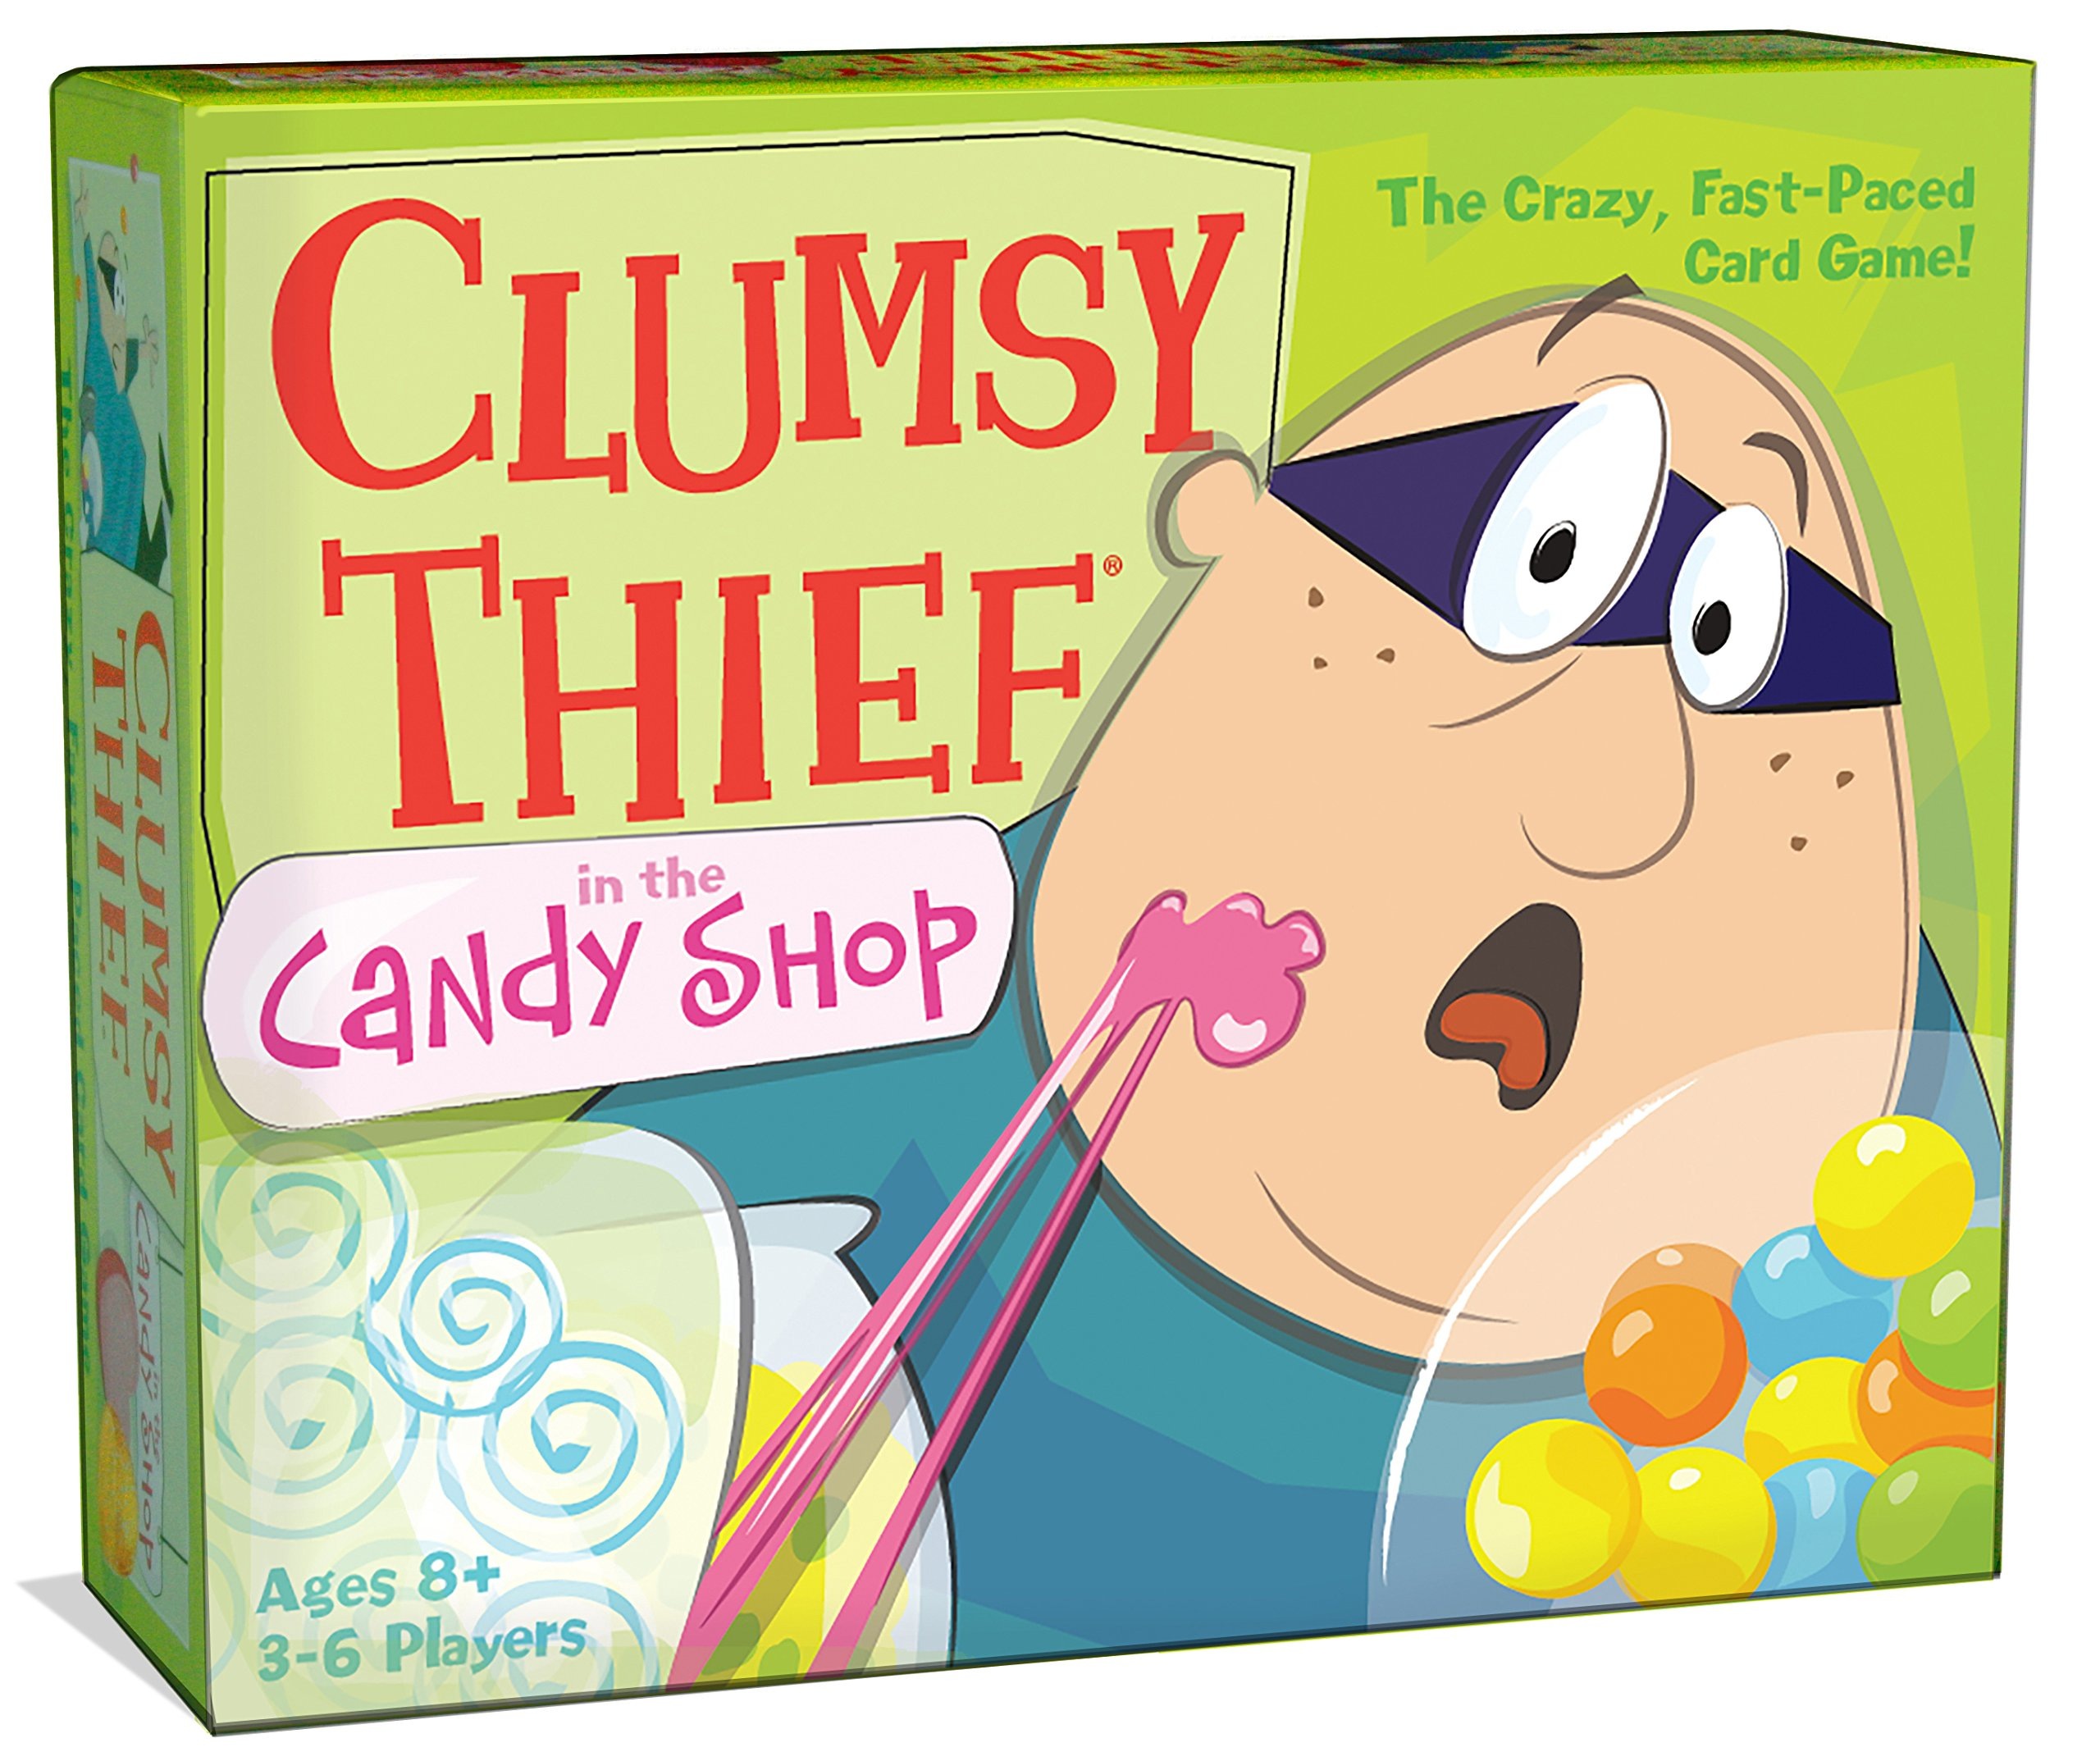 CLUMSY THIEF in the Candy Shop - Adding to 20 Game